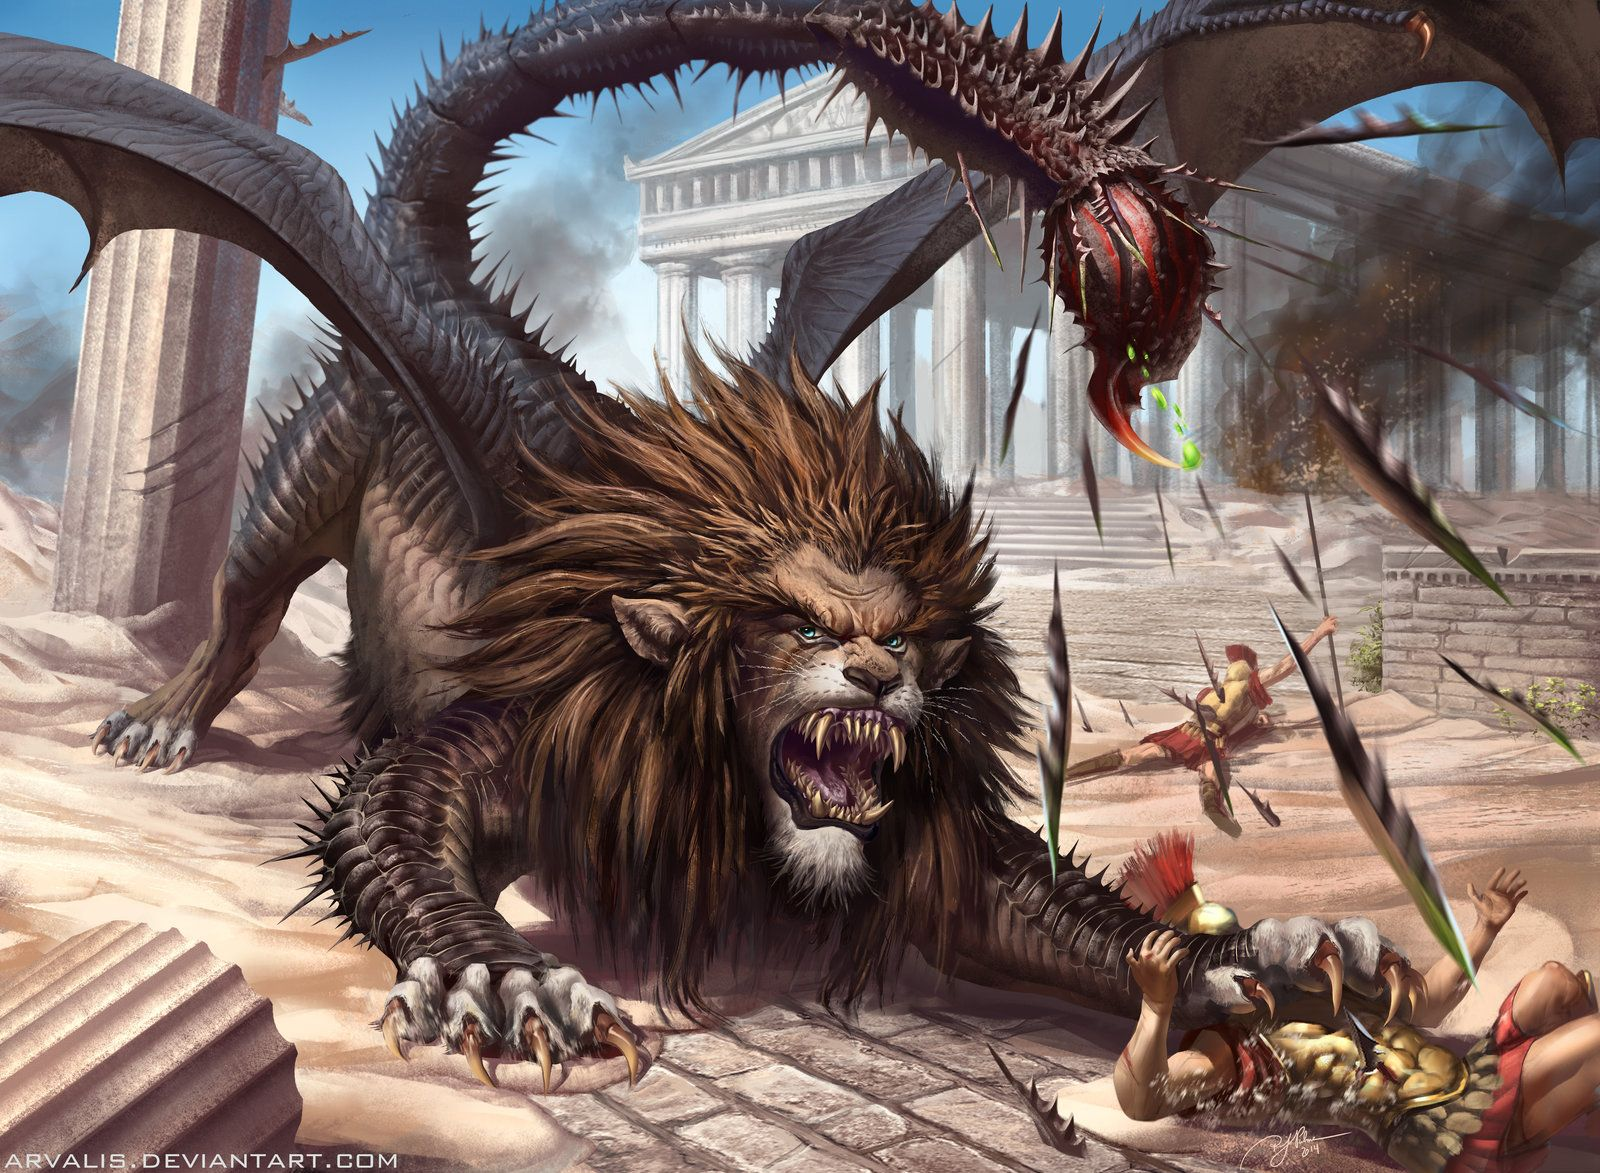 manticore by arvalis lion scorpion bat dragon monster beast creature animal create your own. Black Bedroom Furniture Sets. Home Design Ideas